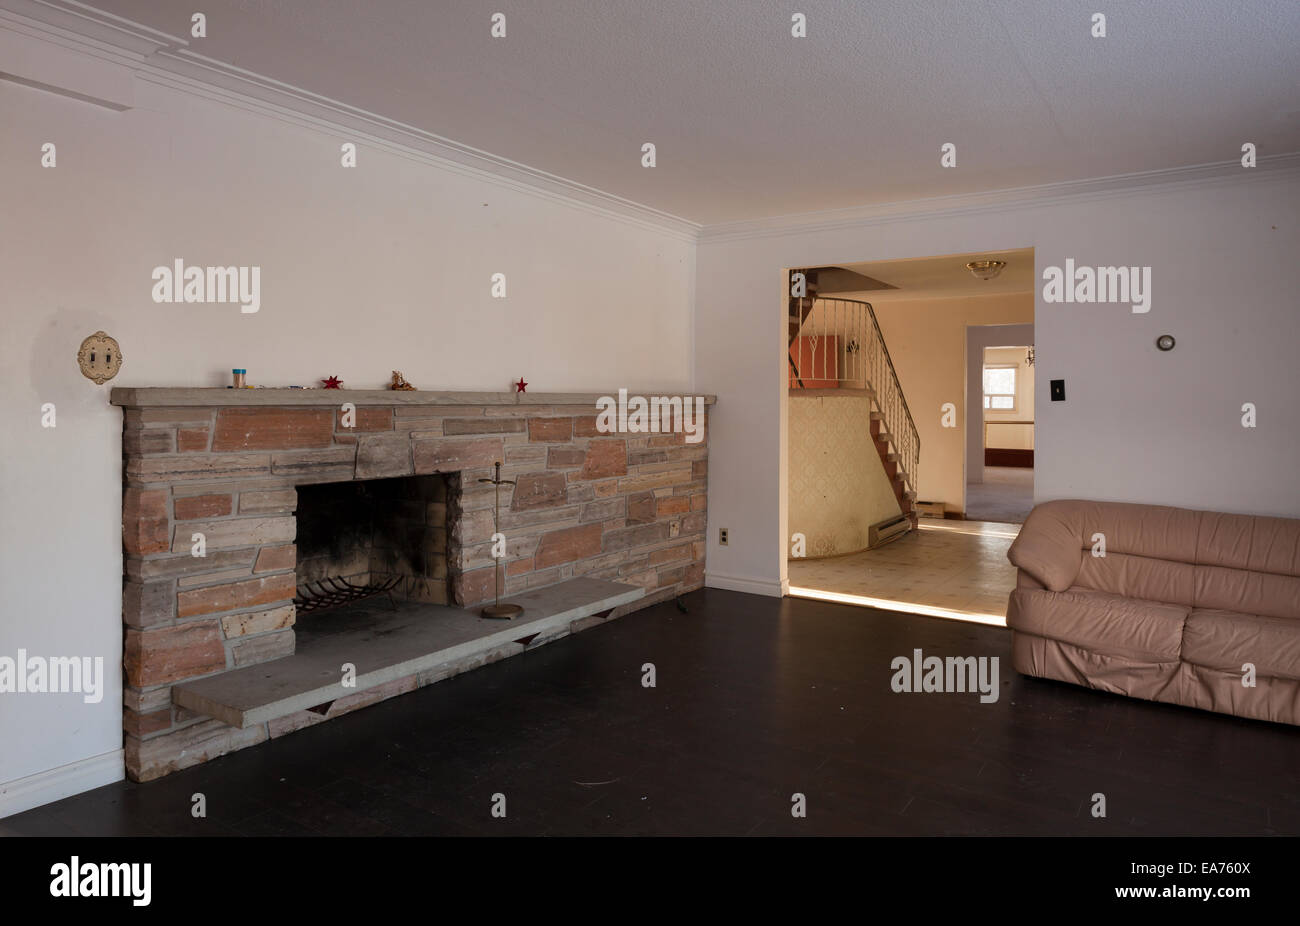 fireplace in empty room stock photos u0026 fireplace in empty room